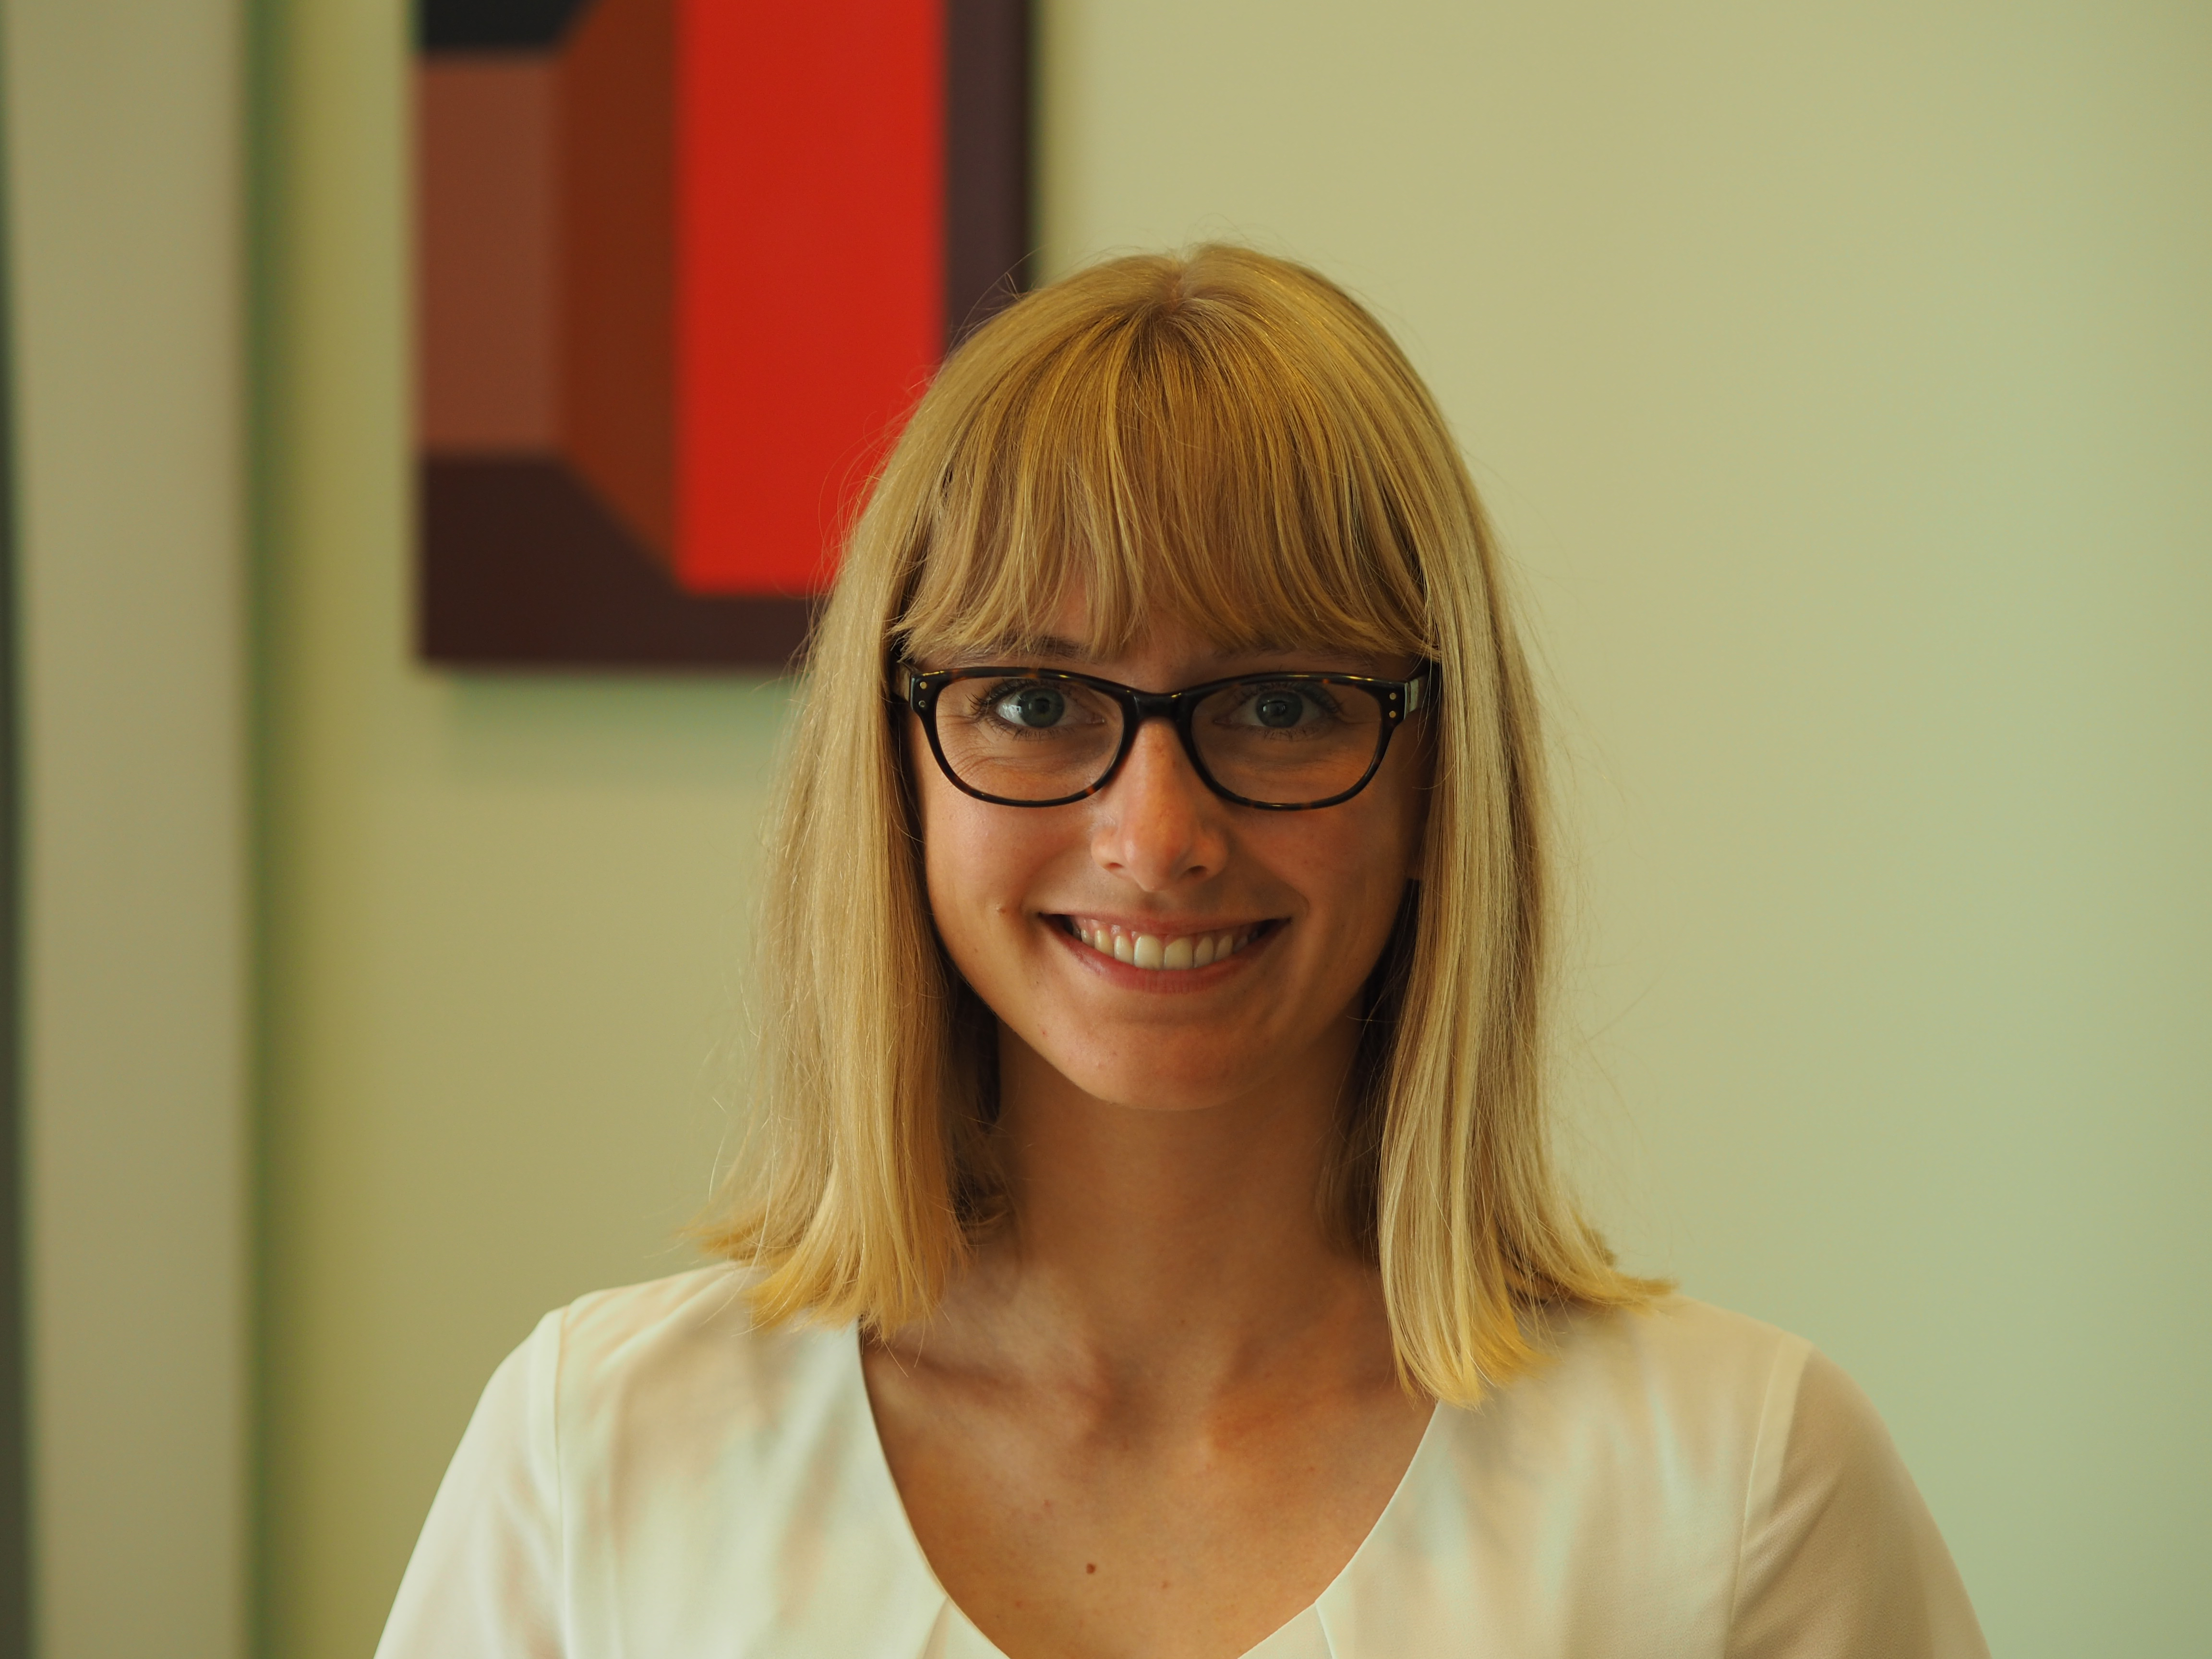 The Summer Intern: WagArb warmly welcomes Alena Rogge to the team